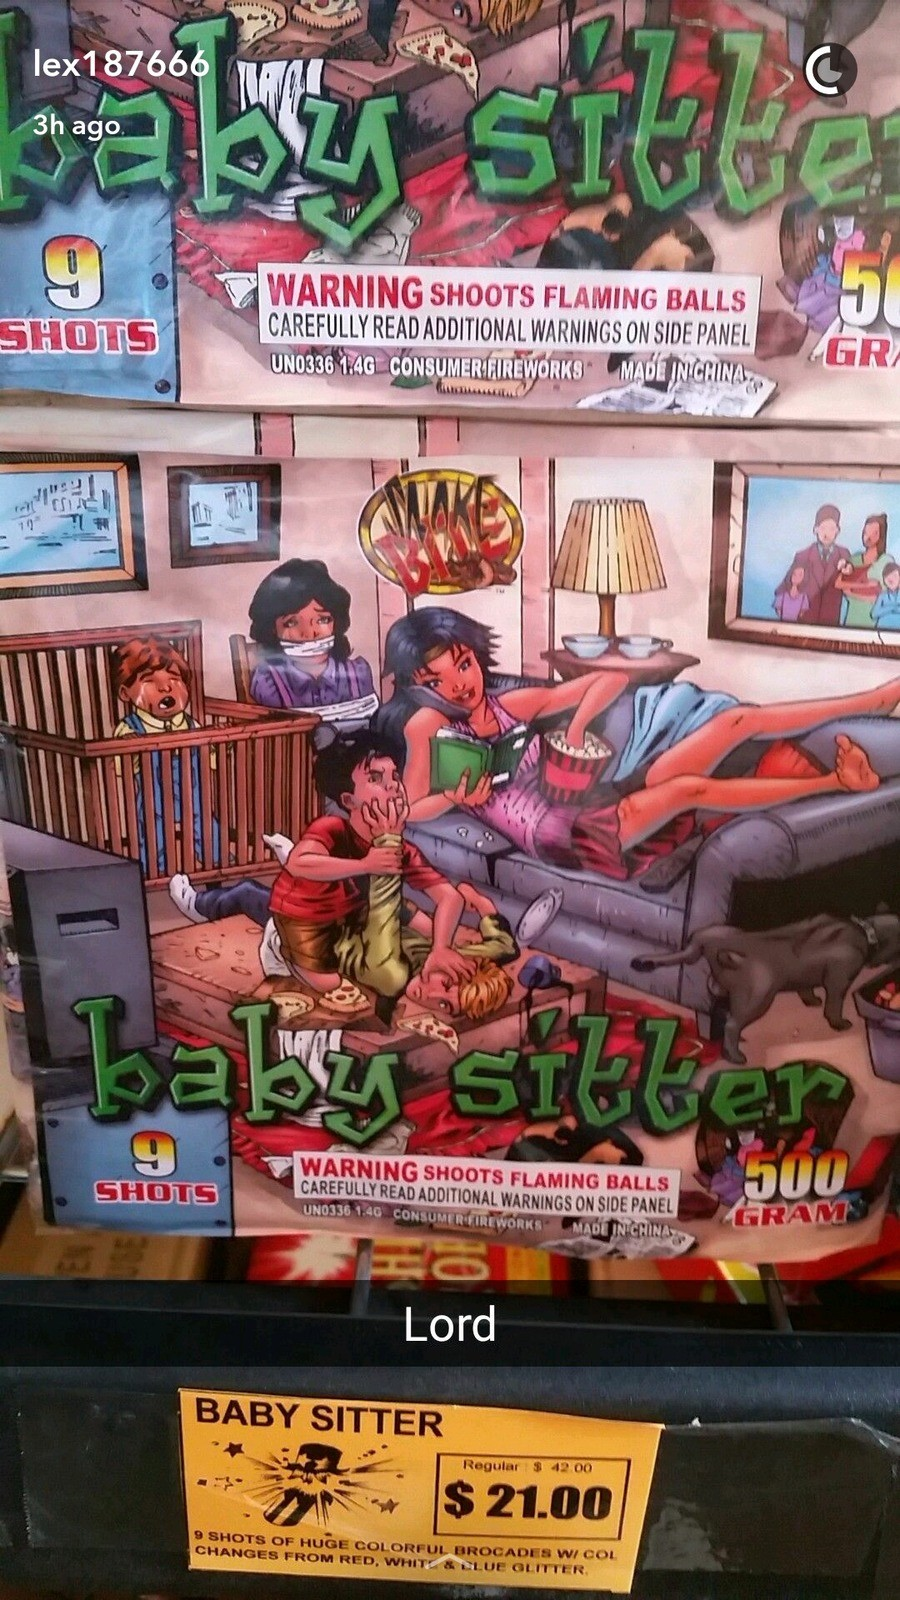 The baby sitter firework. Saw this at a fireworks stand and made me laugh how China dippicts Americans on their fireworks!.. Completely inaccurate. The house isn't messy enough.